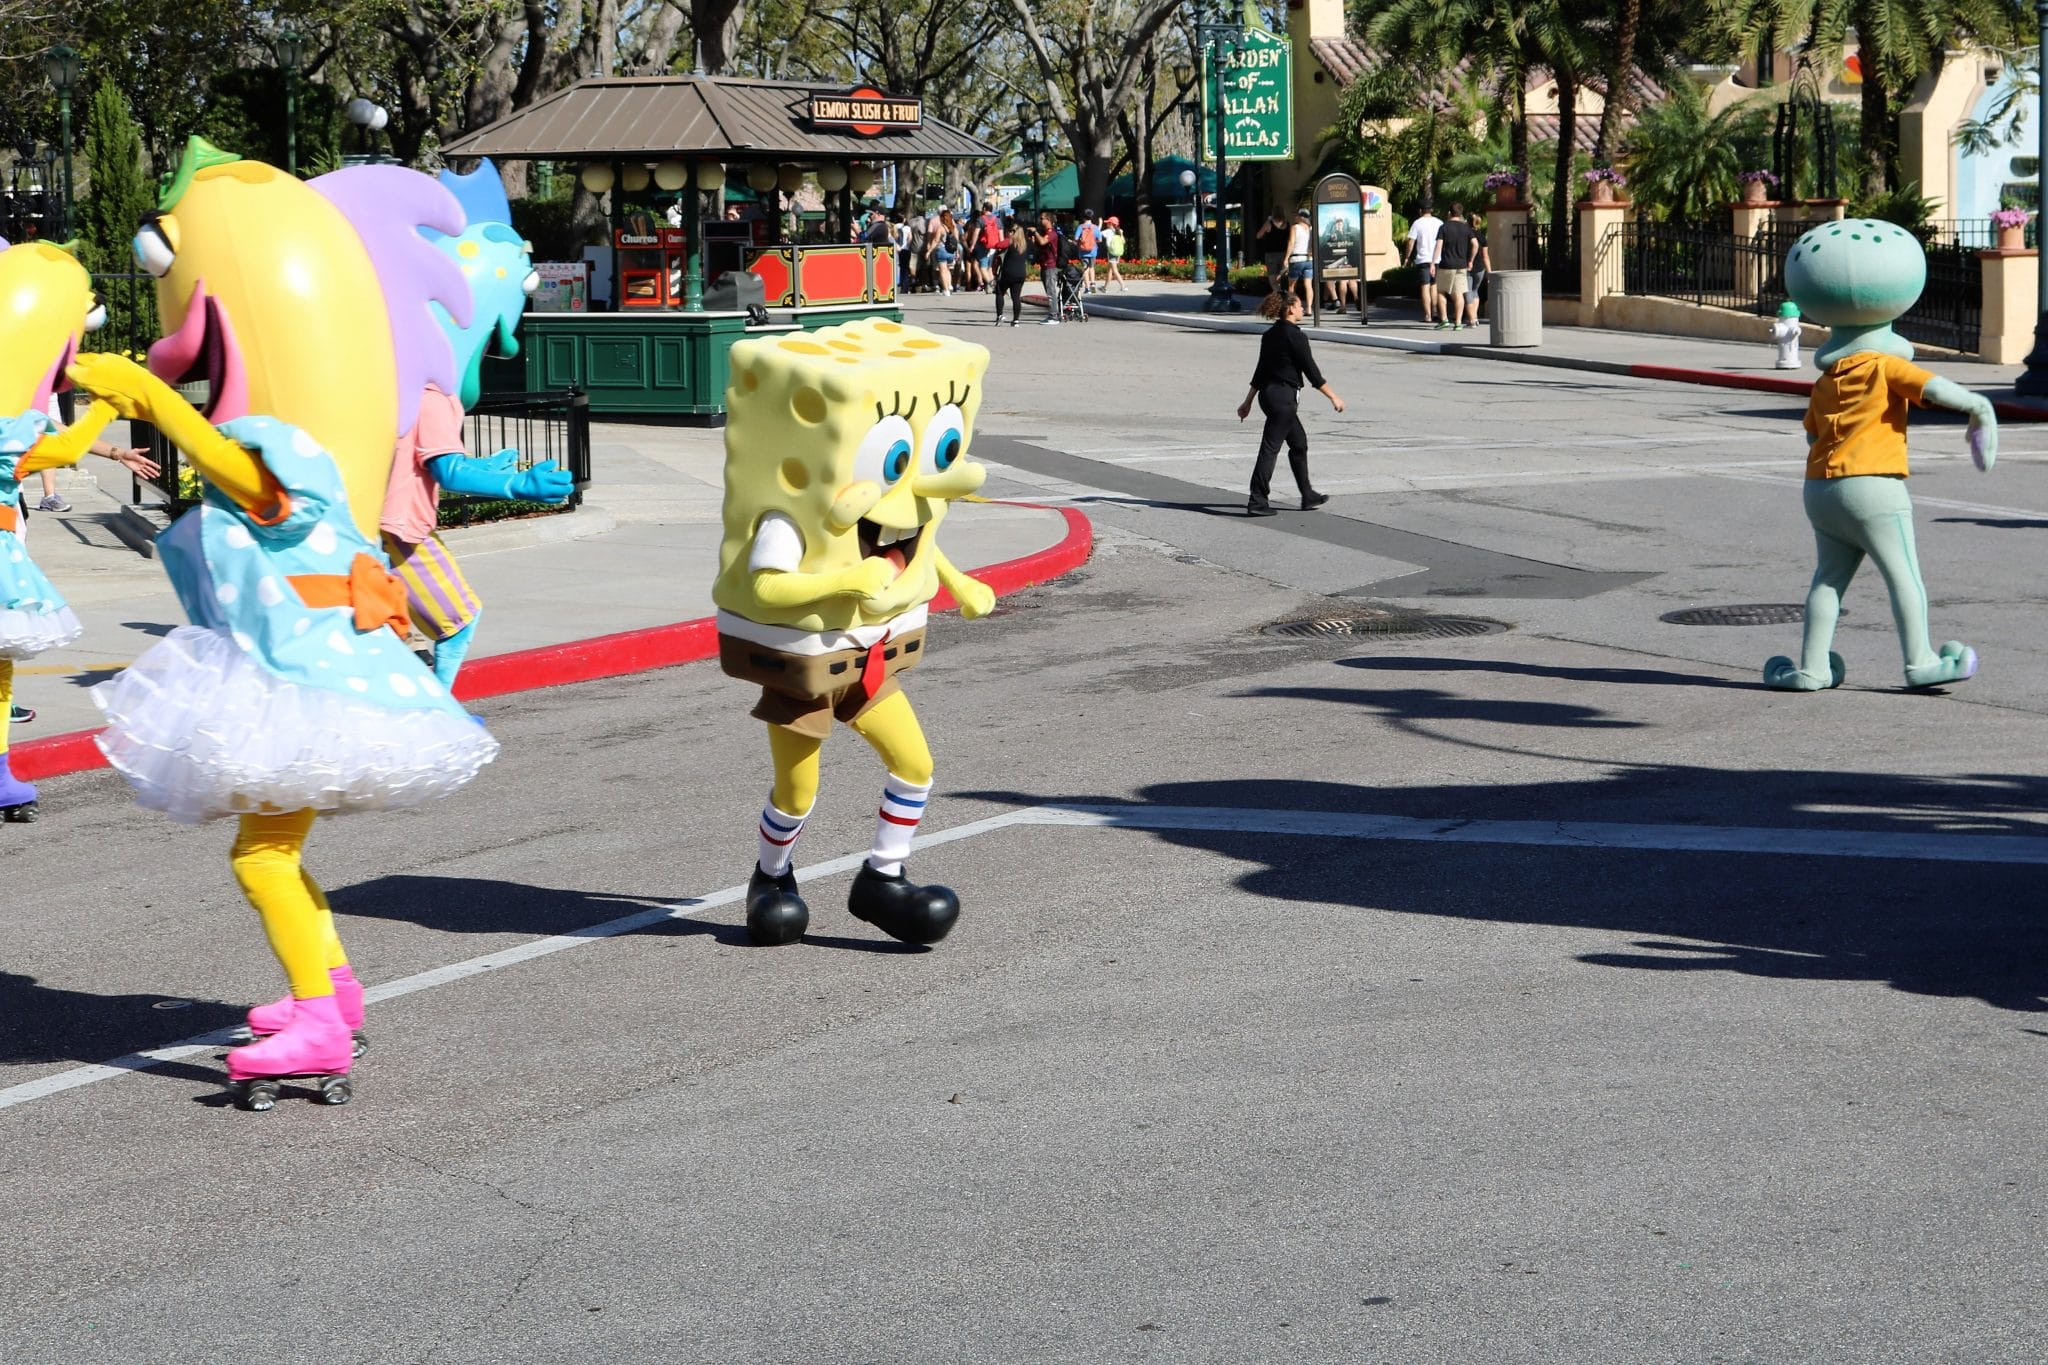 Character Party Zone - Spongebob Squarepants